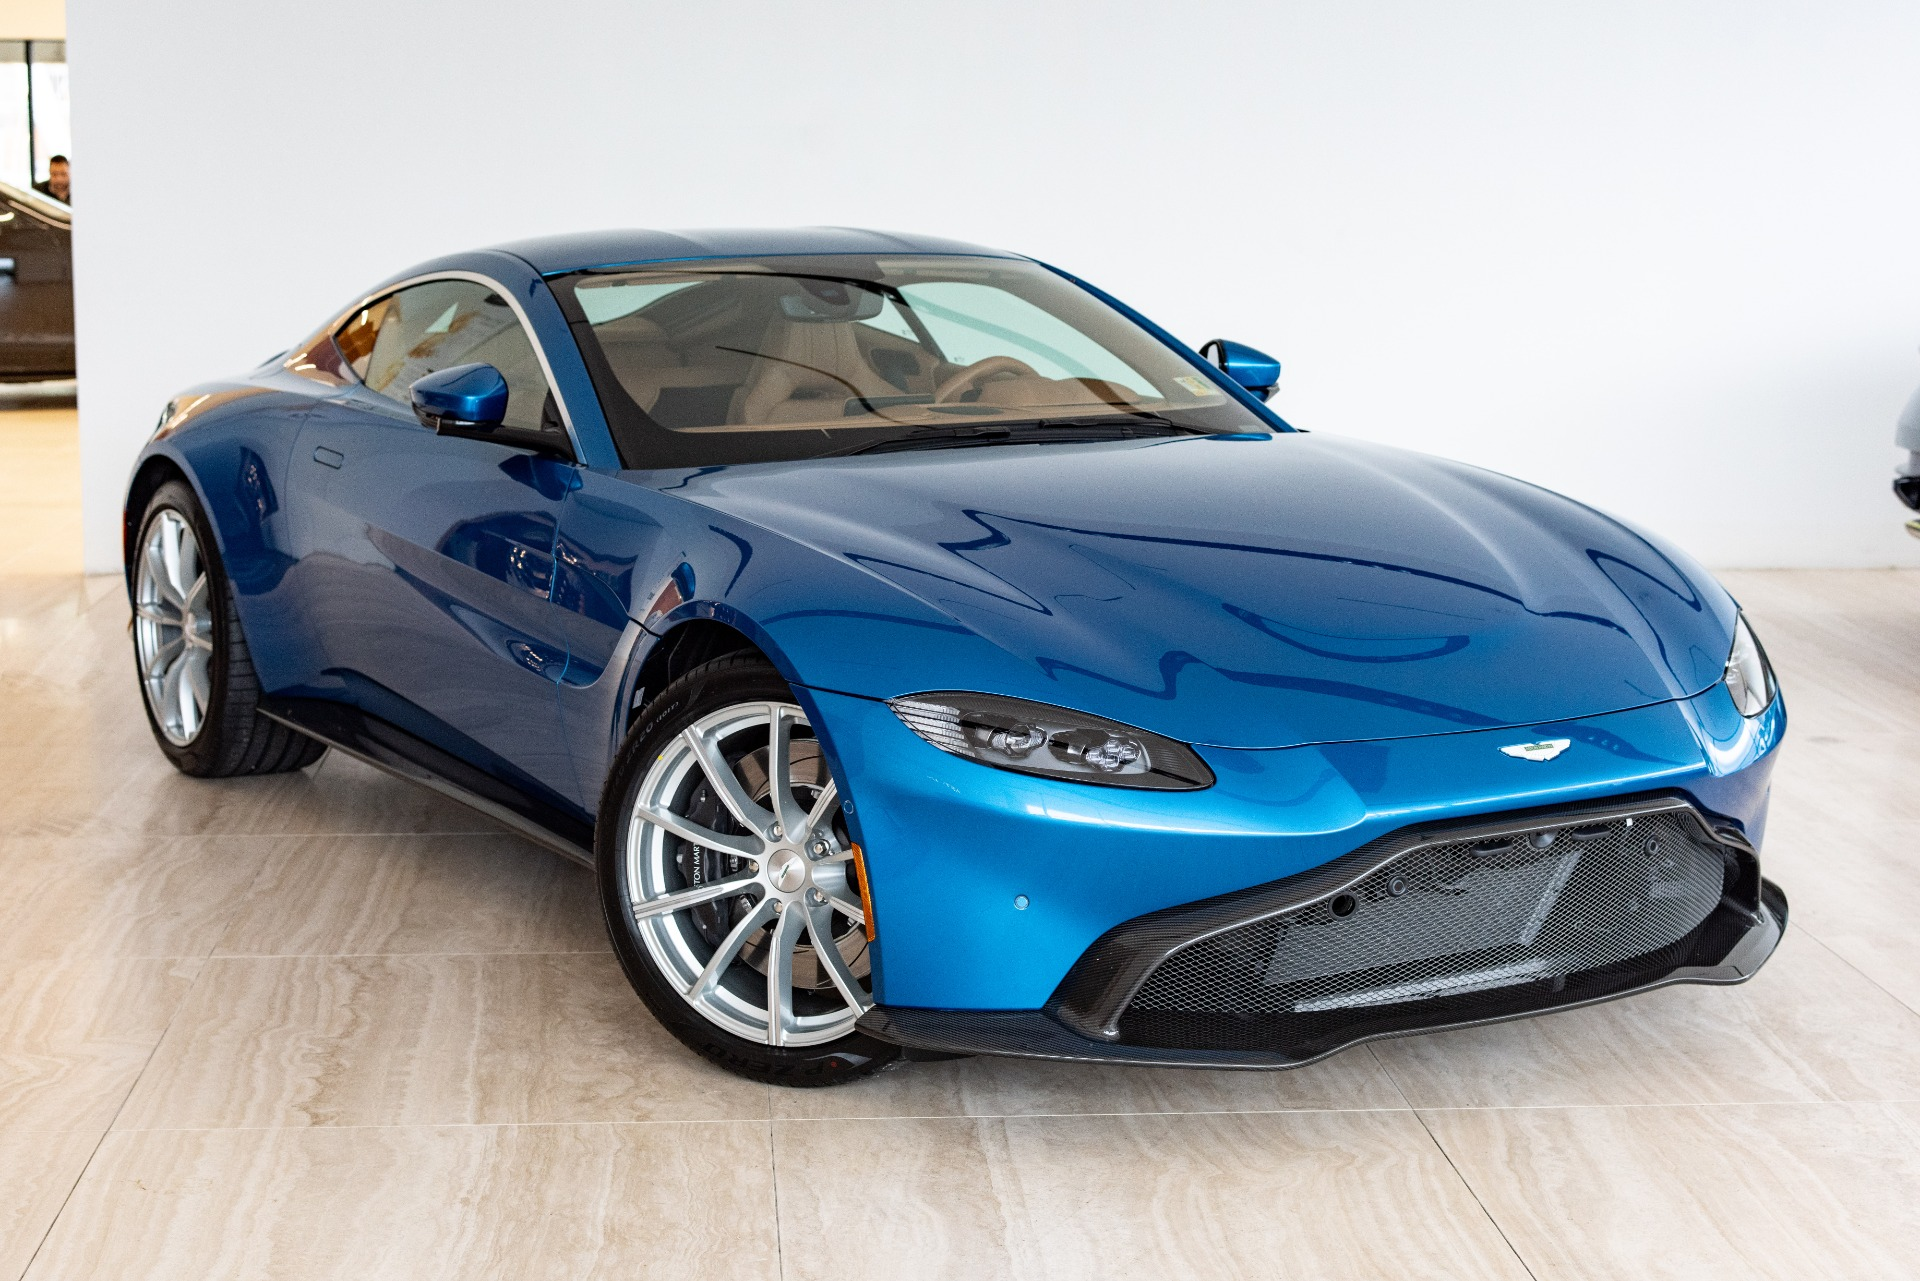 2019 Aston Martin Vantage Blue - Aston Martin Cars Review ...